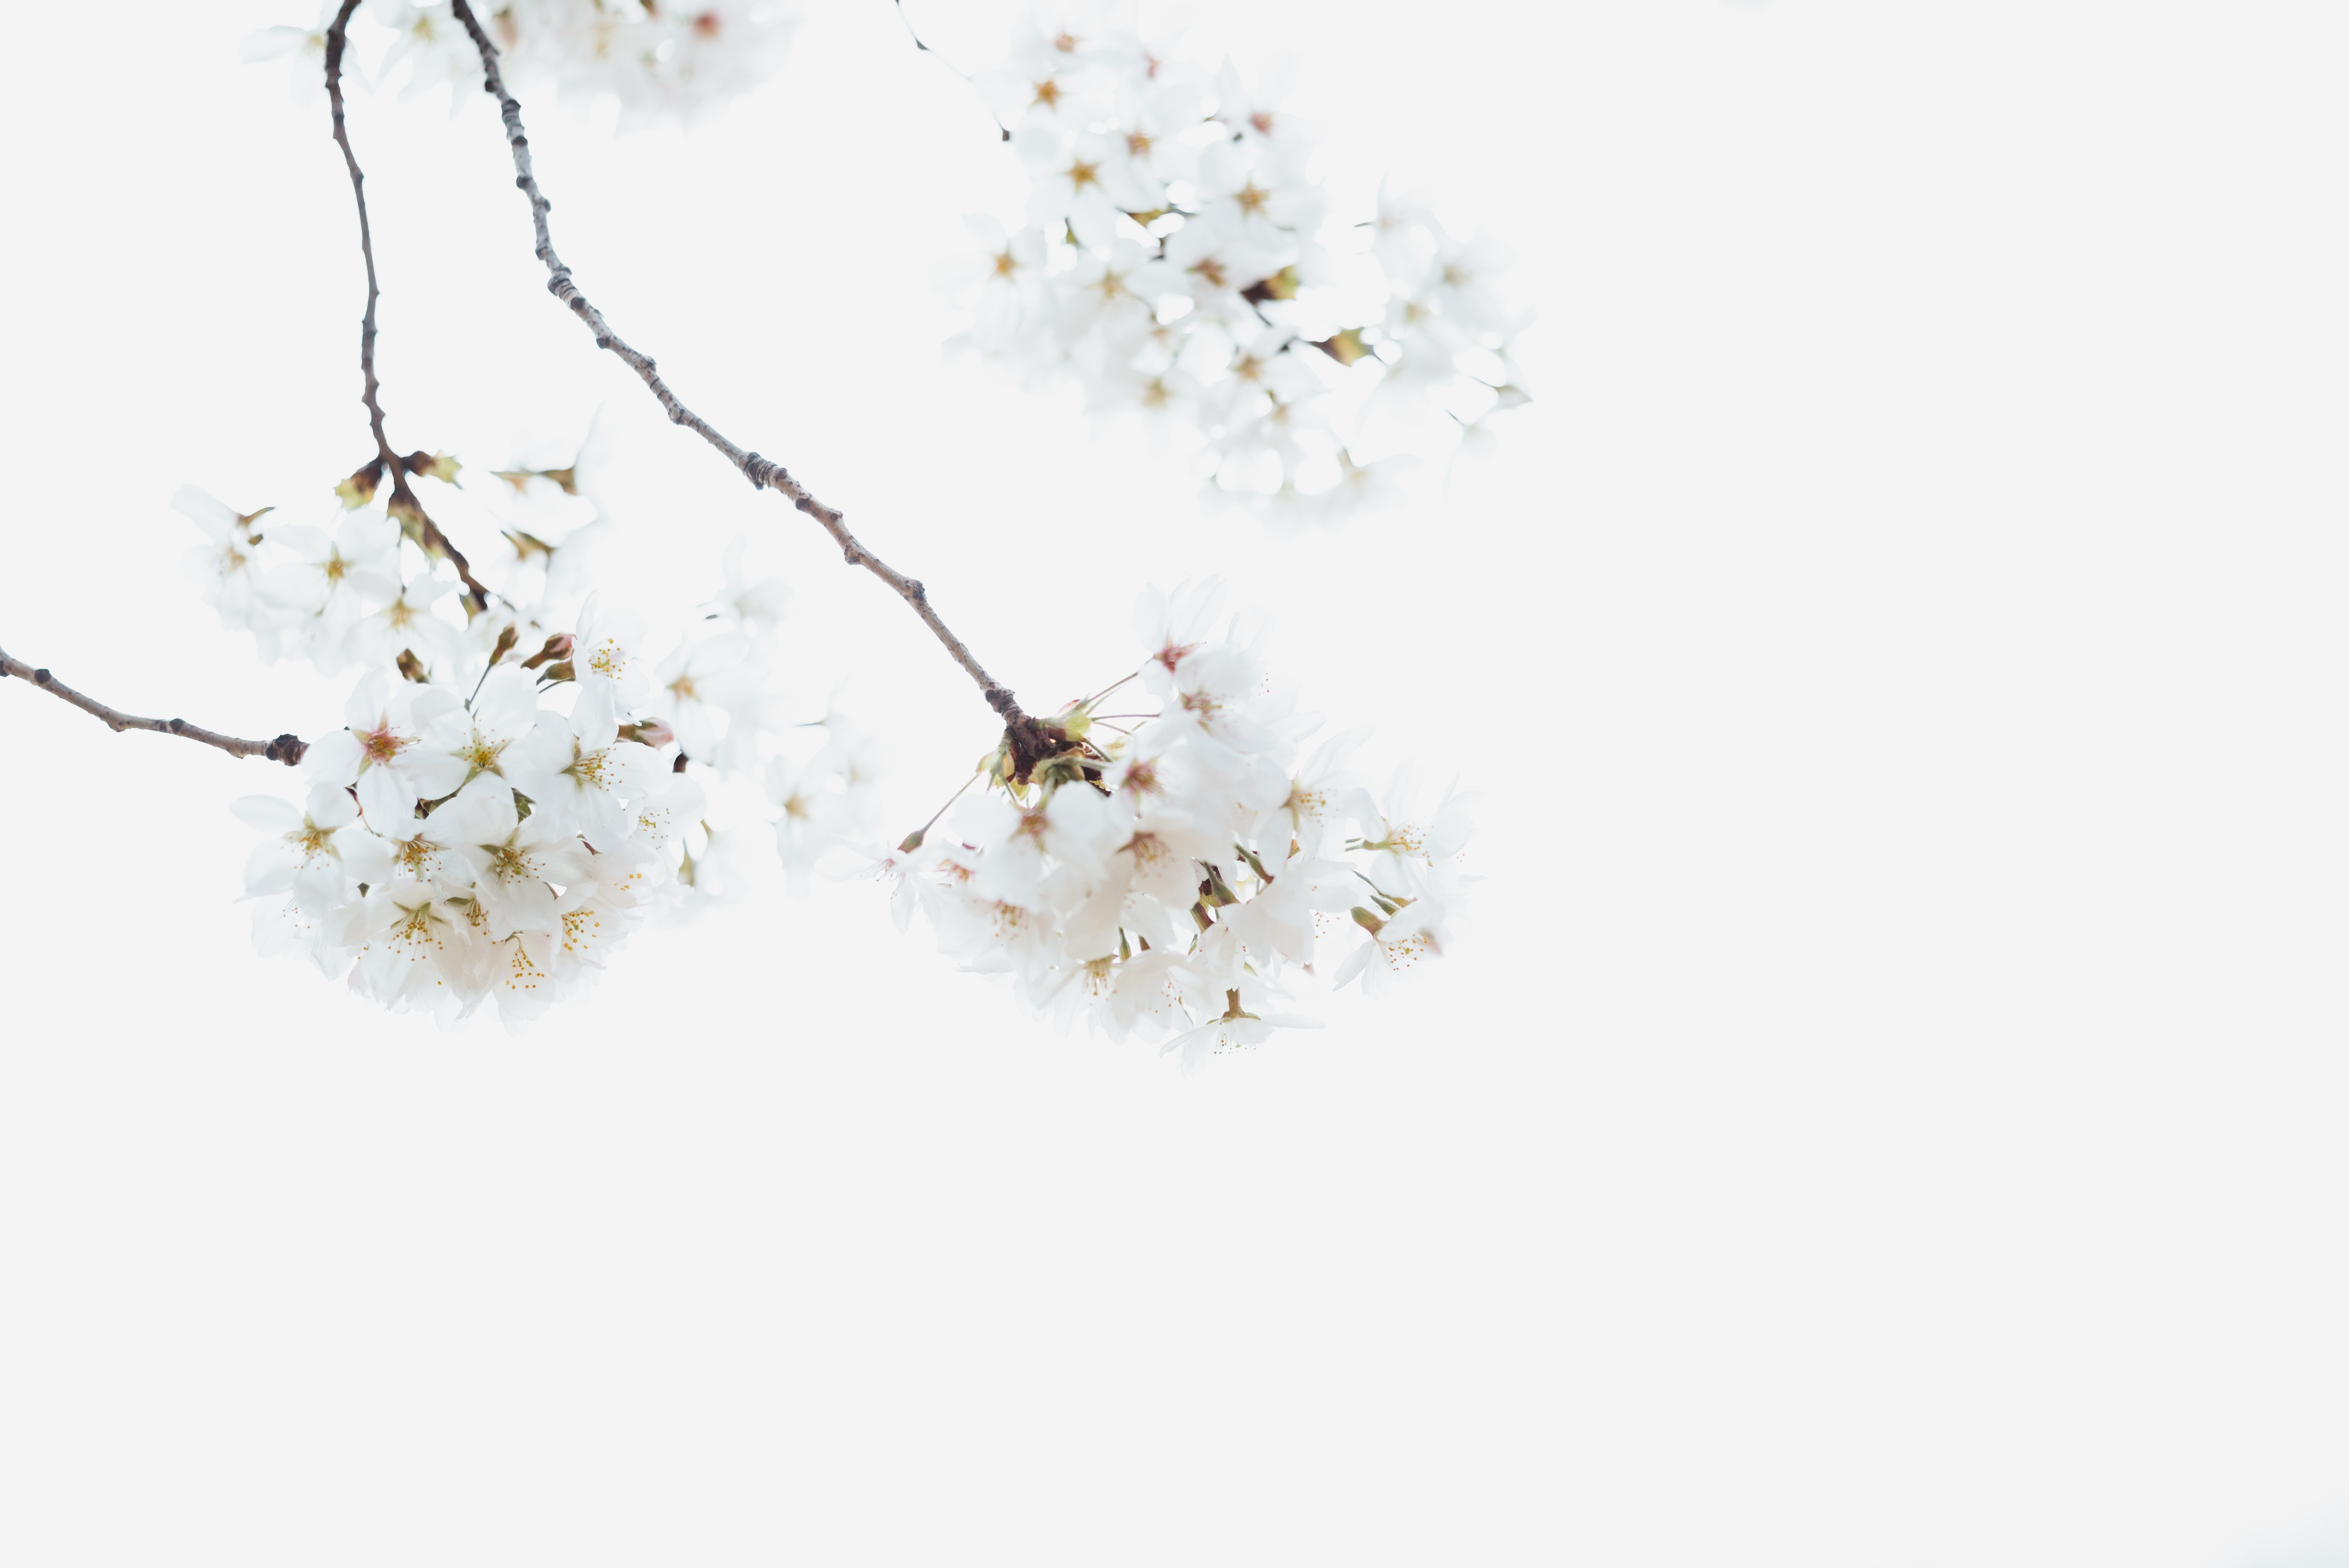 white petaled flowers on snow